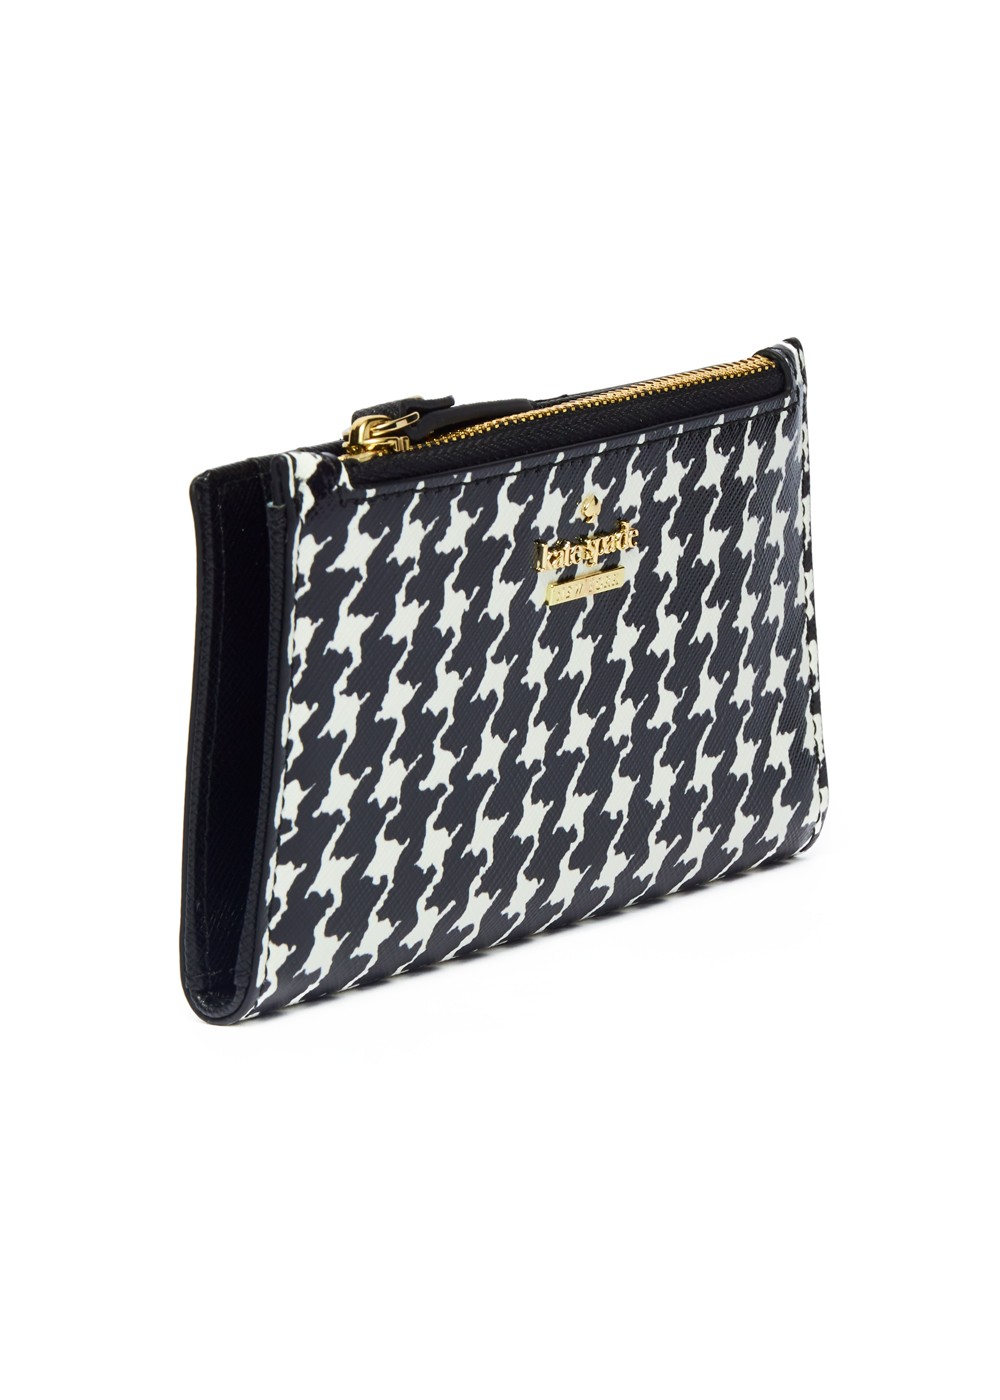 【最大51%OFF】CAMERON STREET HOUNDSTOOTH MIKEY|BLACK/CREAM|レディース財布|kate spade new york - wallet and more